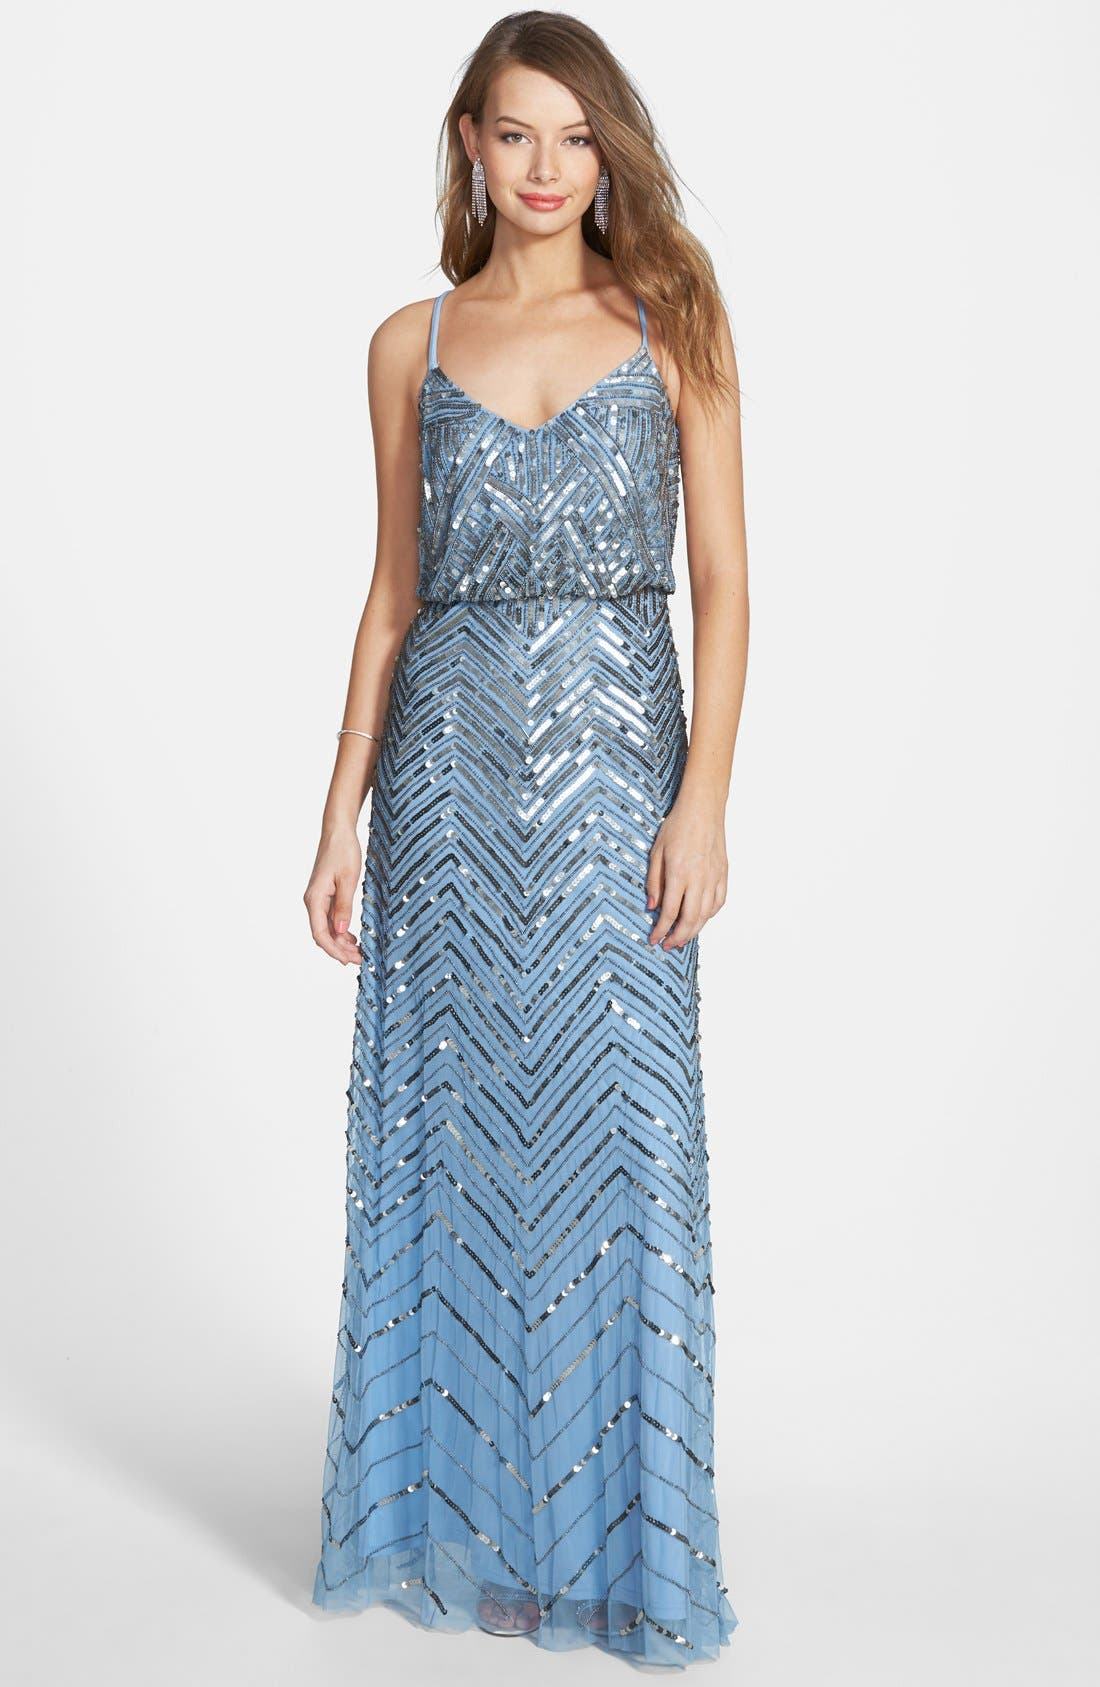 Alternate Image 1 Selected - Adrianna Papell Cross Back Sequin Blouson Gown